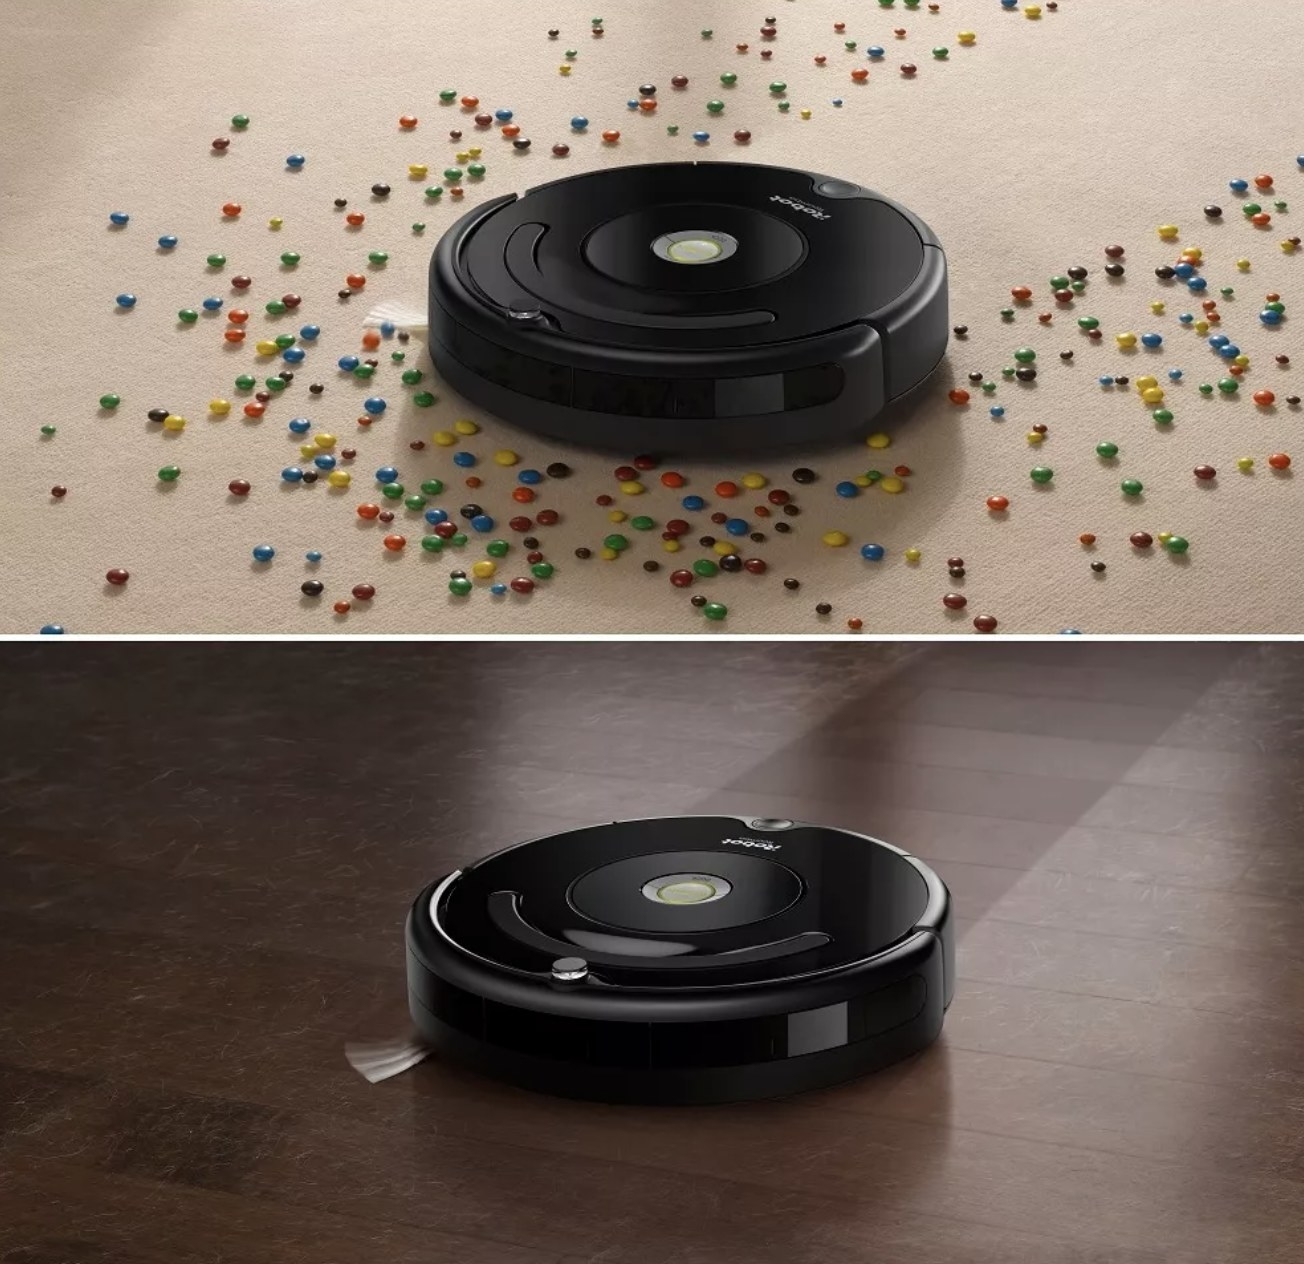 The robot vacuum cleaning spills off of carpet and hardwood